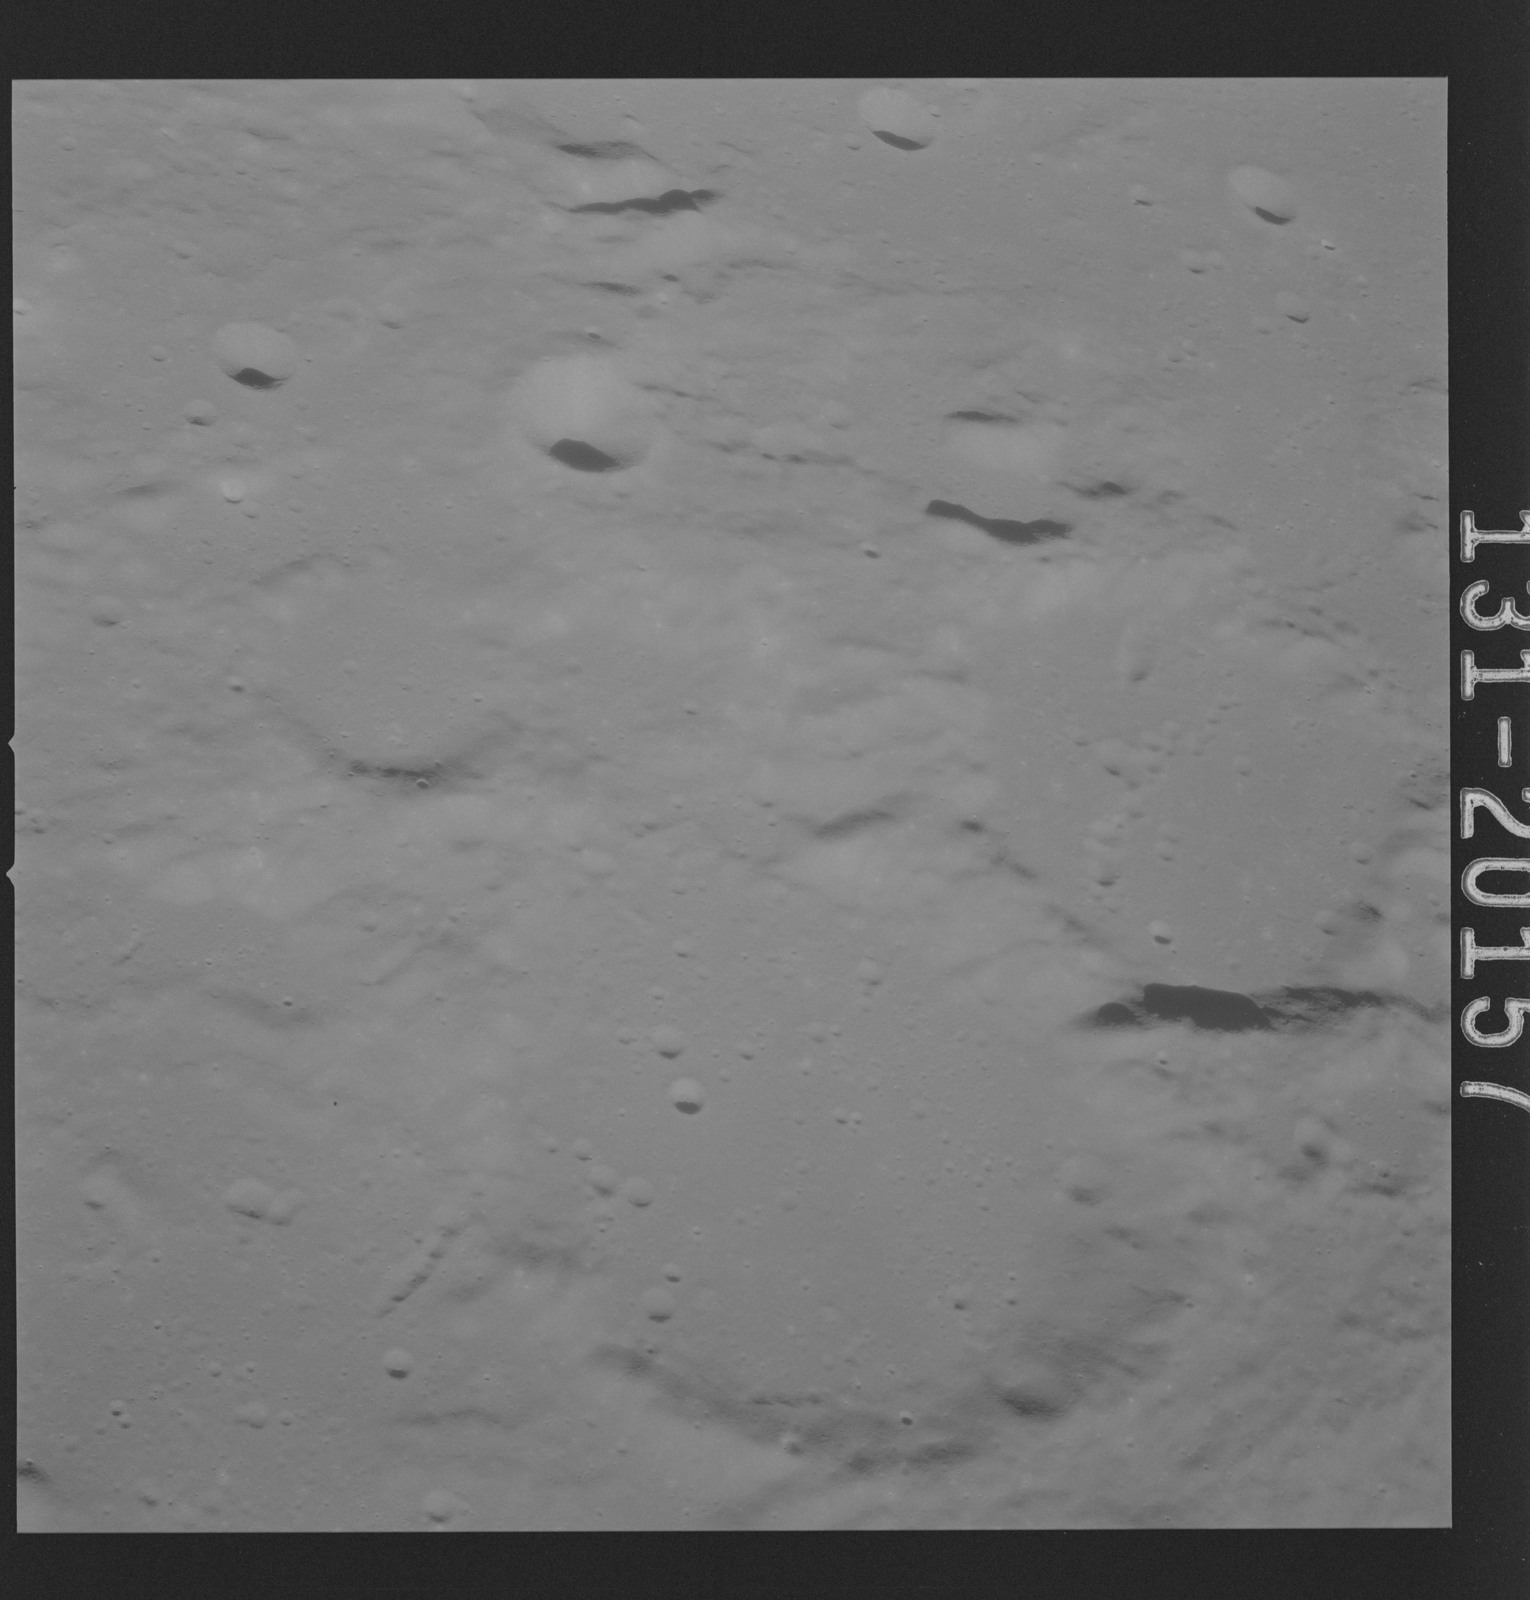 AS16-131-20157 - Apollo 16 - Apollo 16 Mission Image - Ultraviolet view of the Dolland B, C Craters, 4000A.